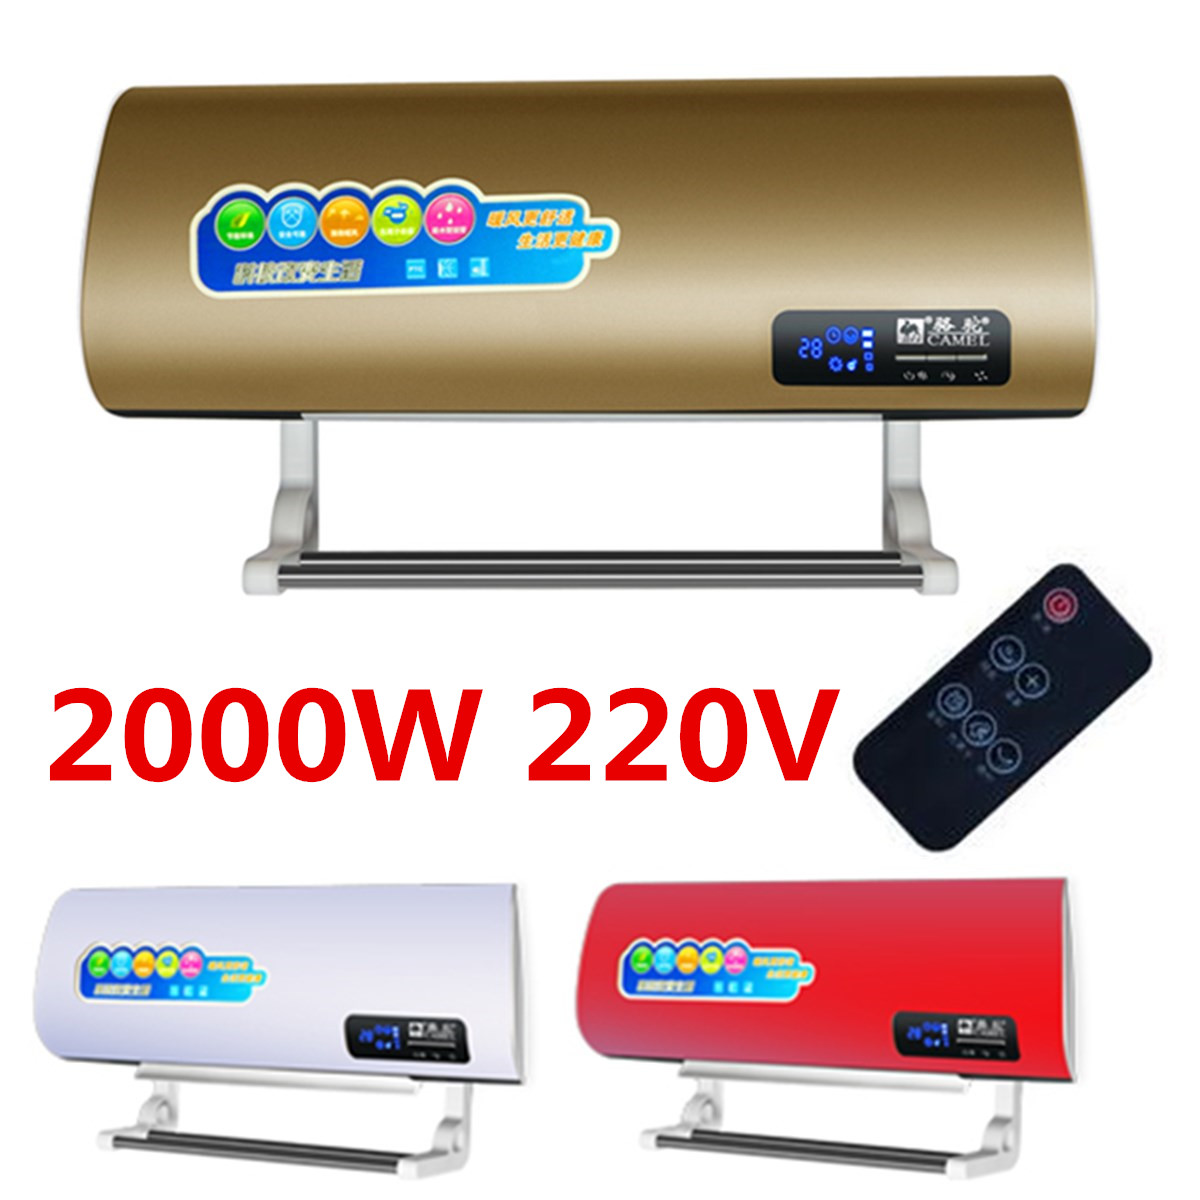 2000W 220V Wall Mounted Heater Household Space Heating Air Conditioning with Remote Controller